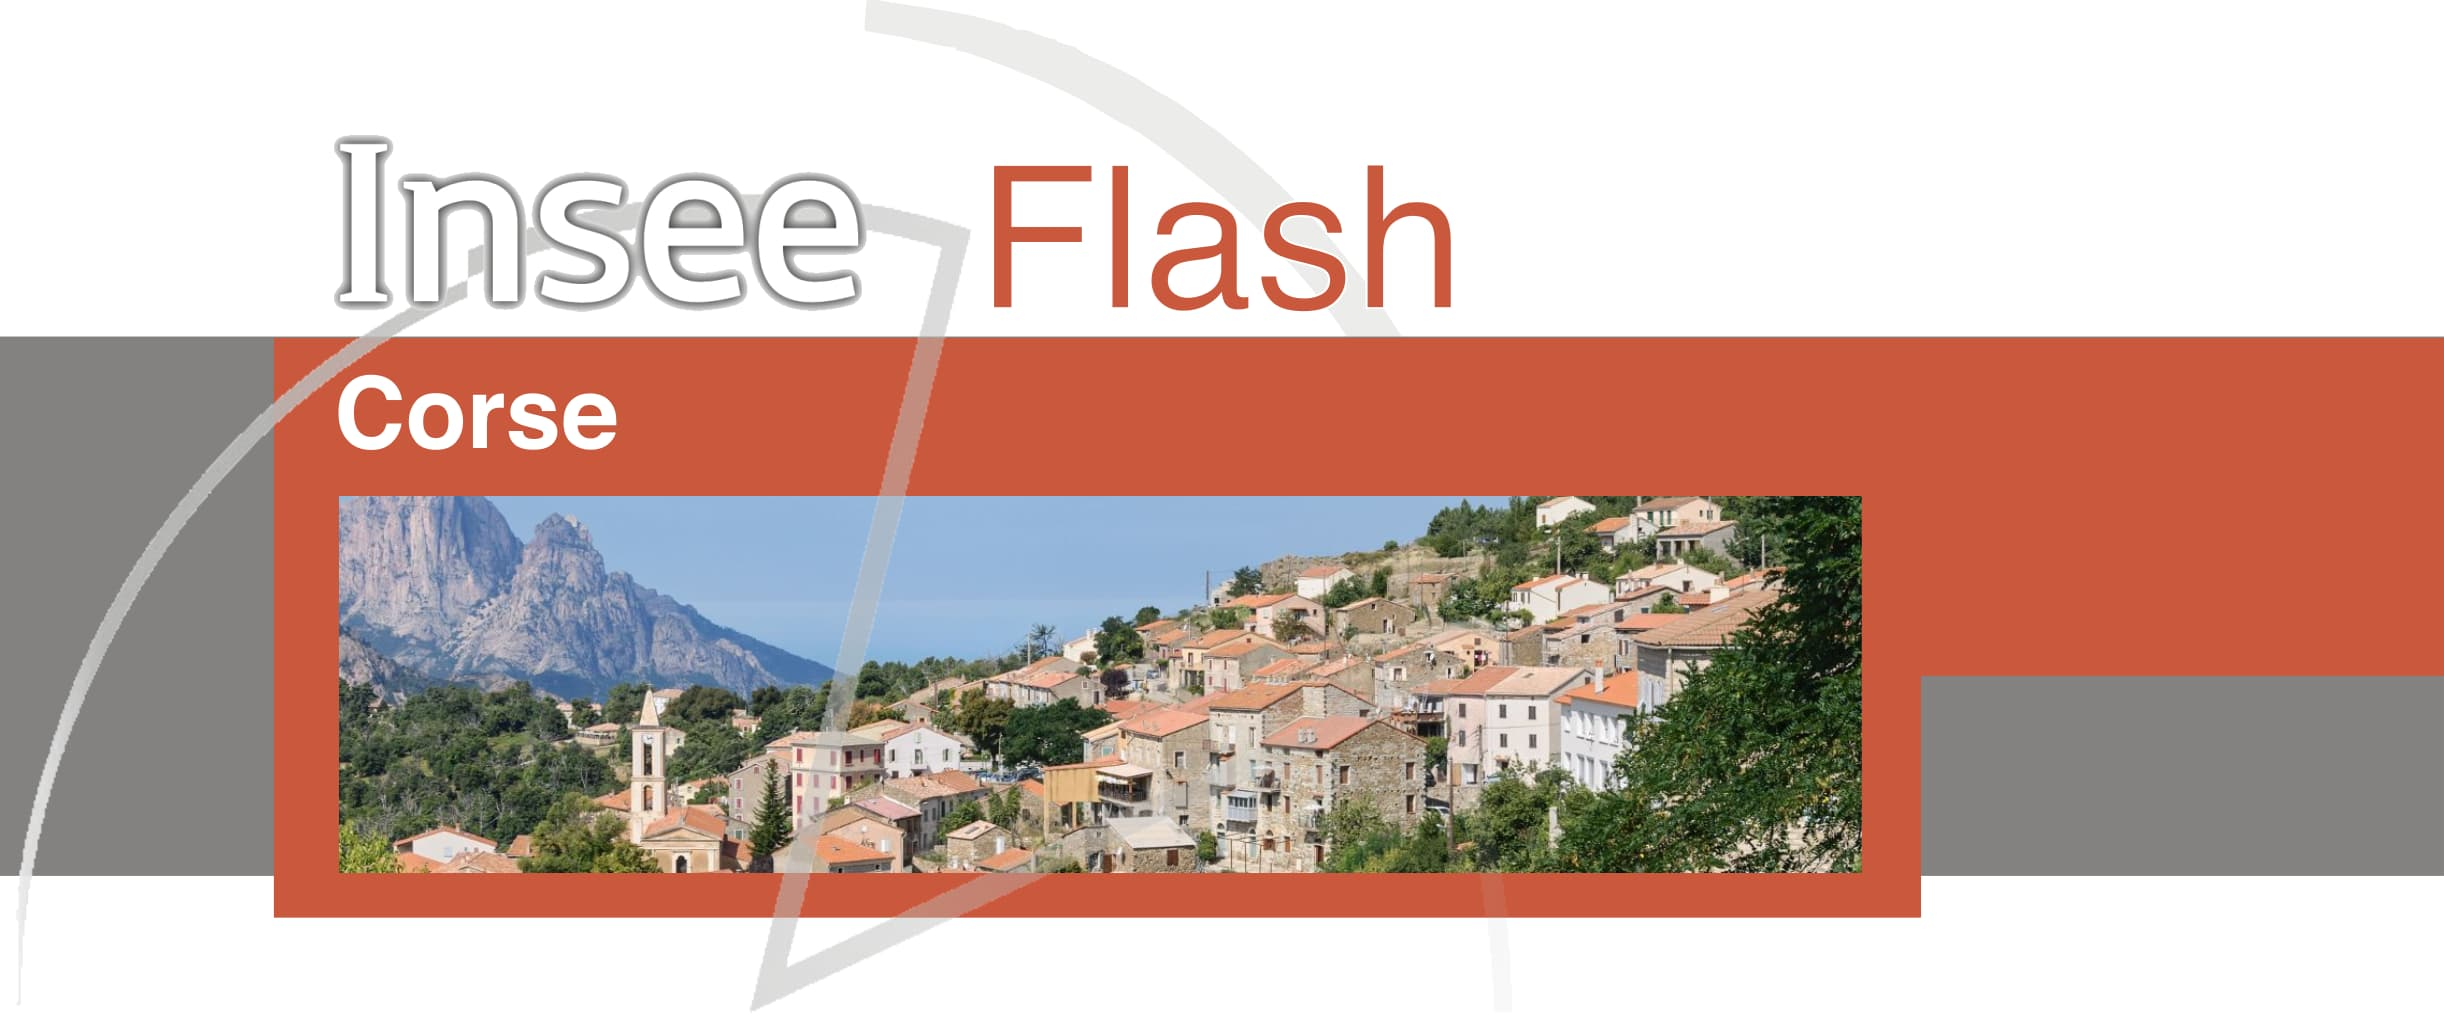 Insee Flash Corse